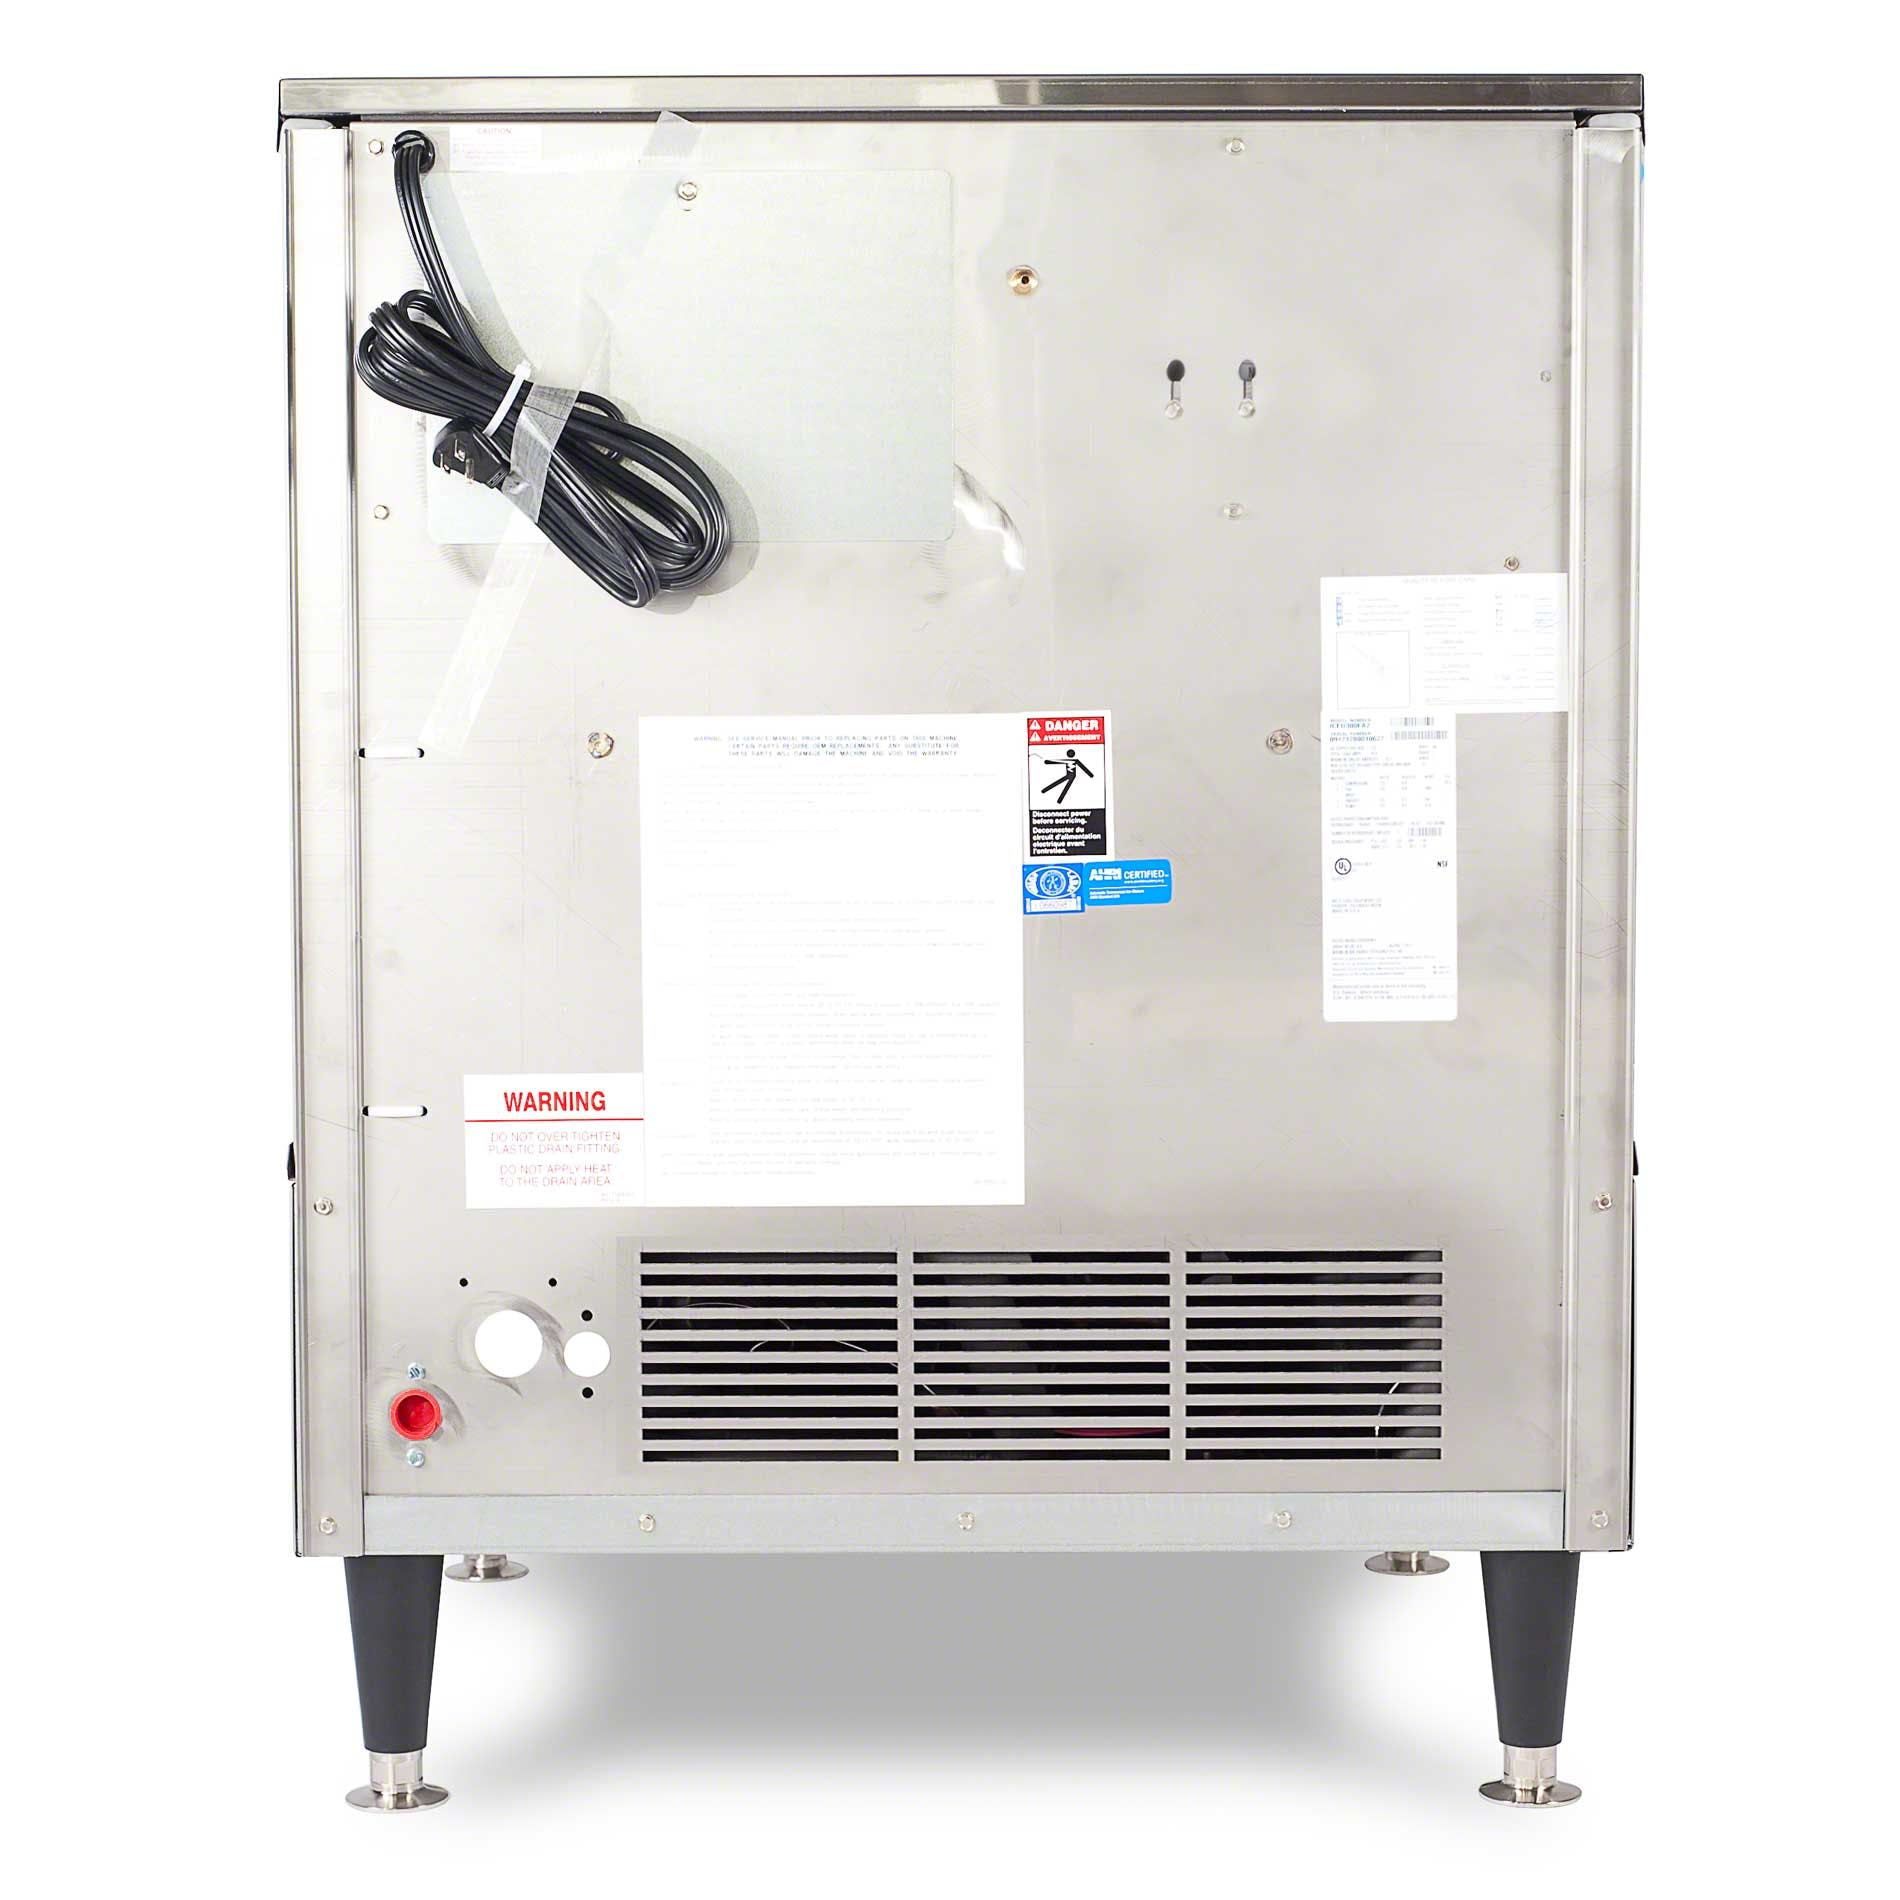 Ice-O-Matic - ICEU220HW 251 lb Self-Contained Half Cube Ice Machine - sold by Food Service Warehouse